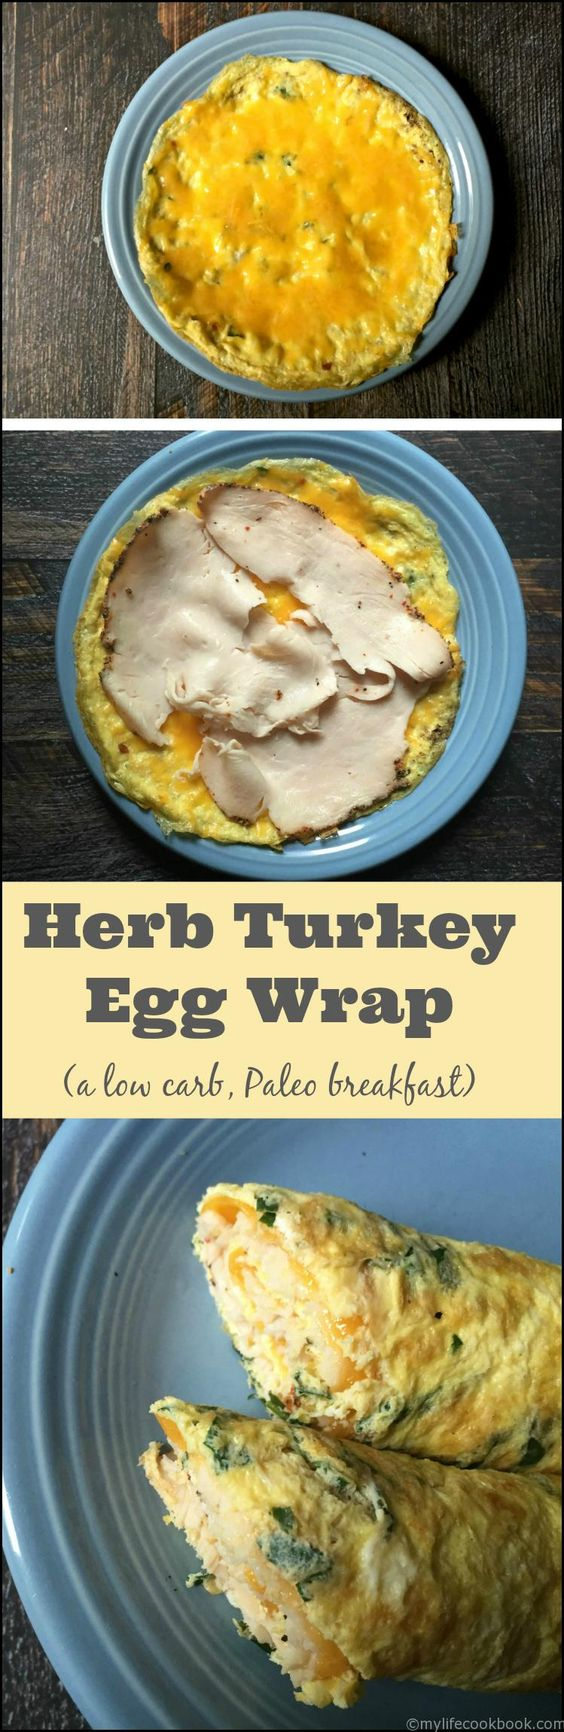 herb turkey egg wrap - paleo, gluten free